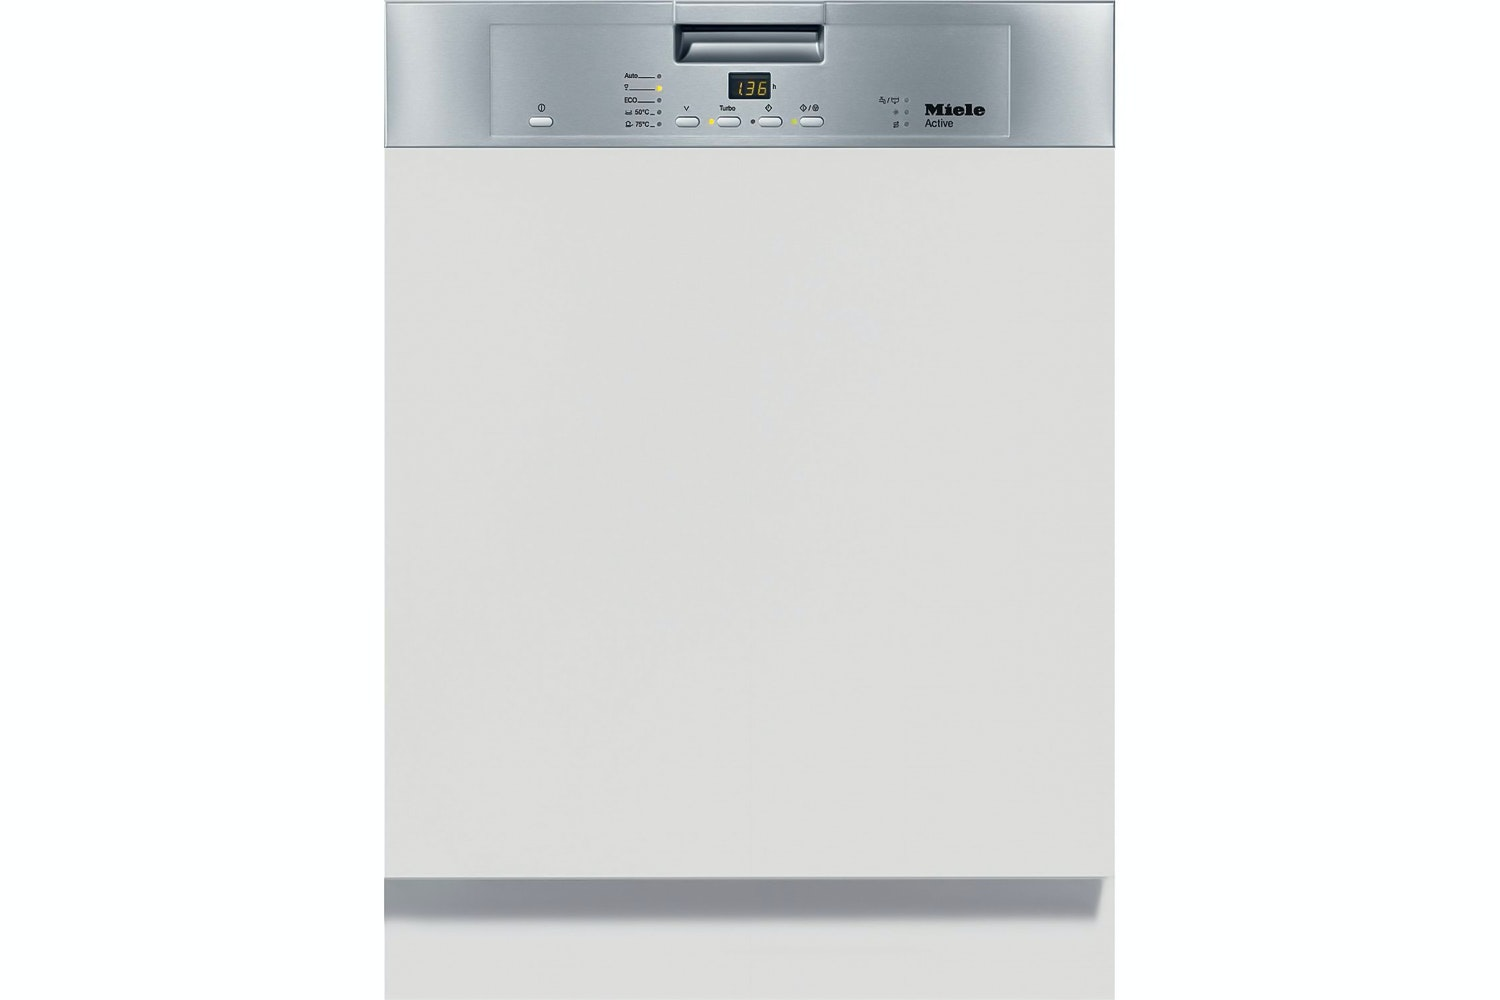 Miele G 4203 i Active  Semi-integrated dishwasher   Delay start and countdown indicator for great entry-level value